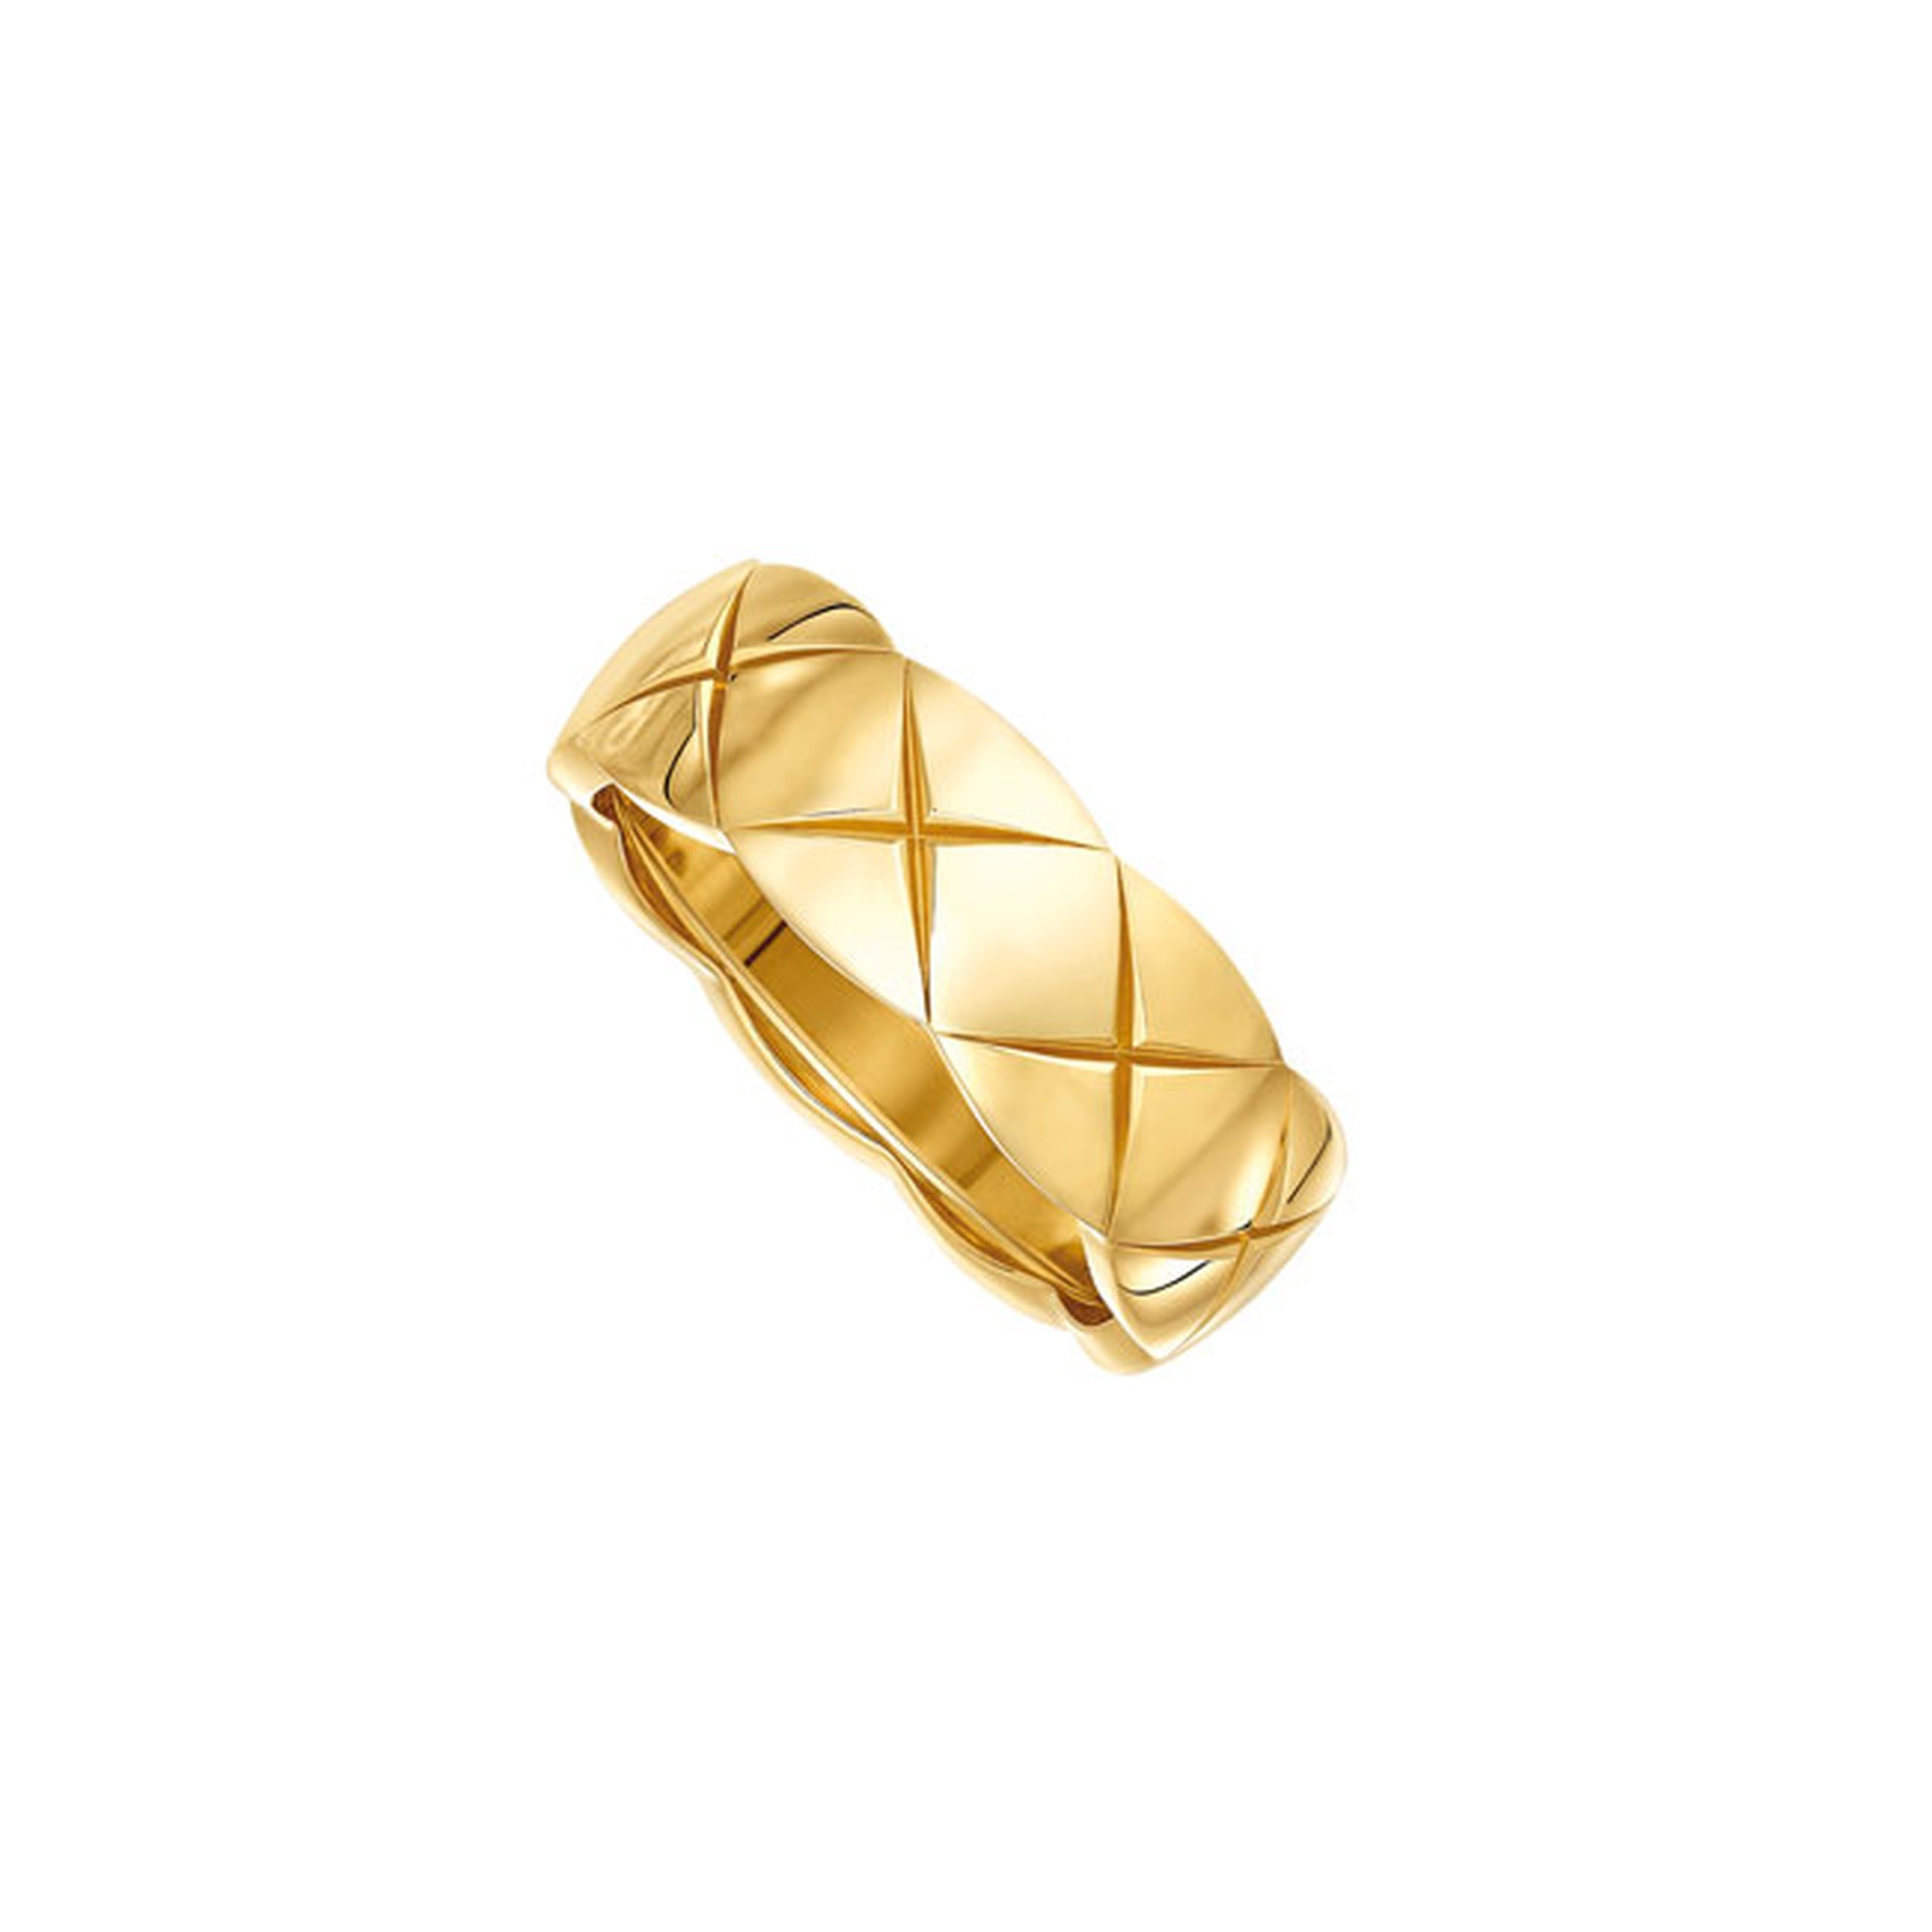 Chanel Coco Crush small 18ct yellow gold ring_main